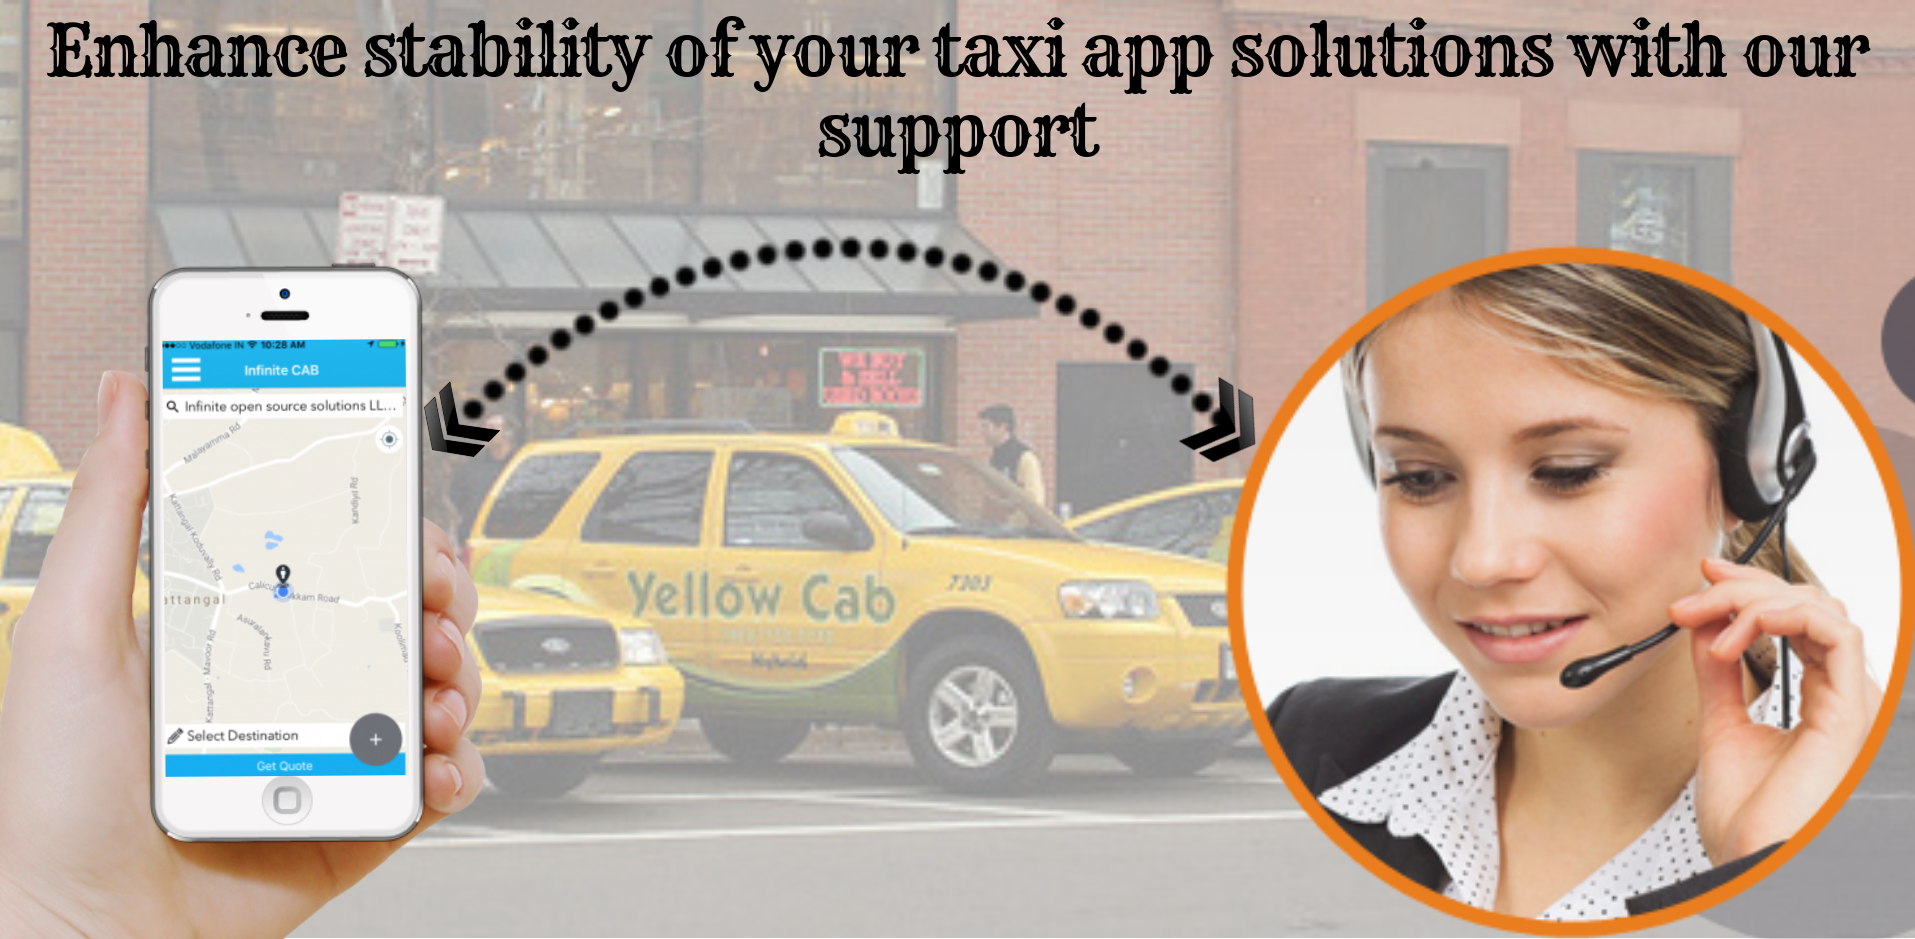 Enhance stability of your taxi app solutions with our support